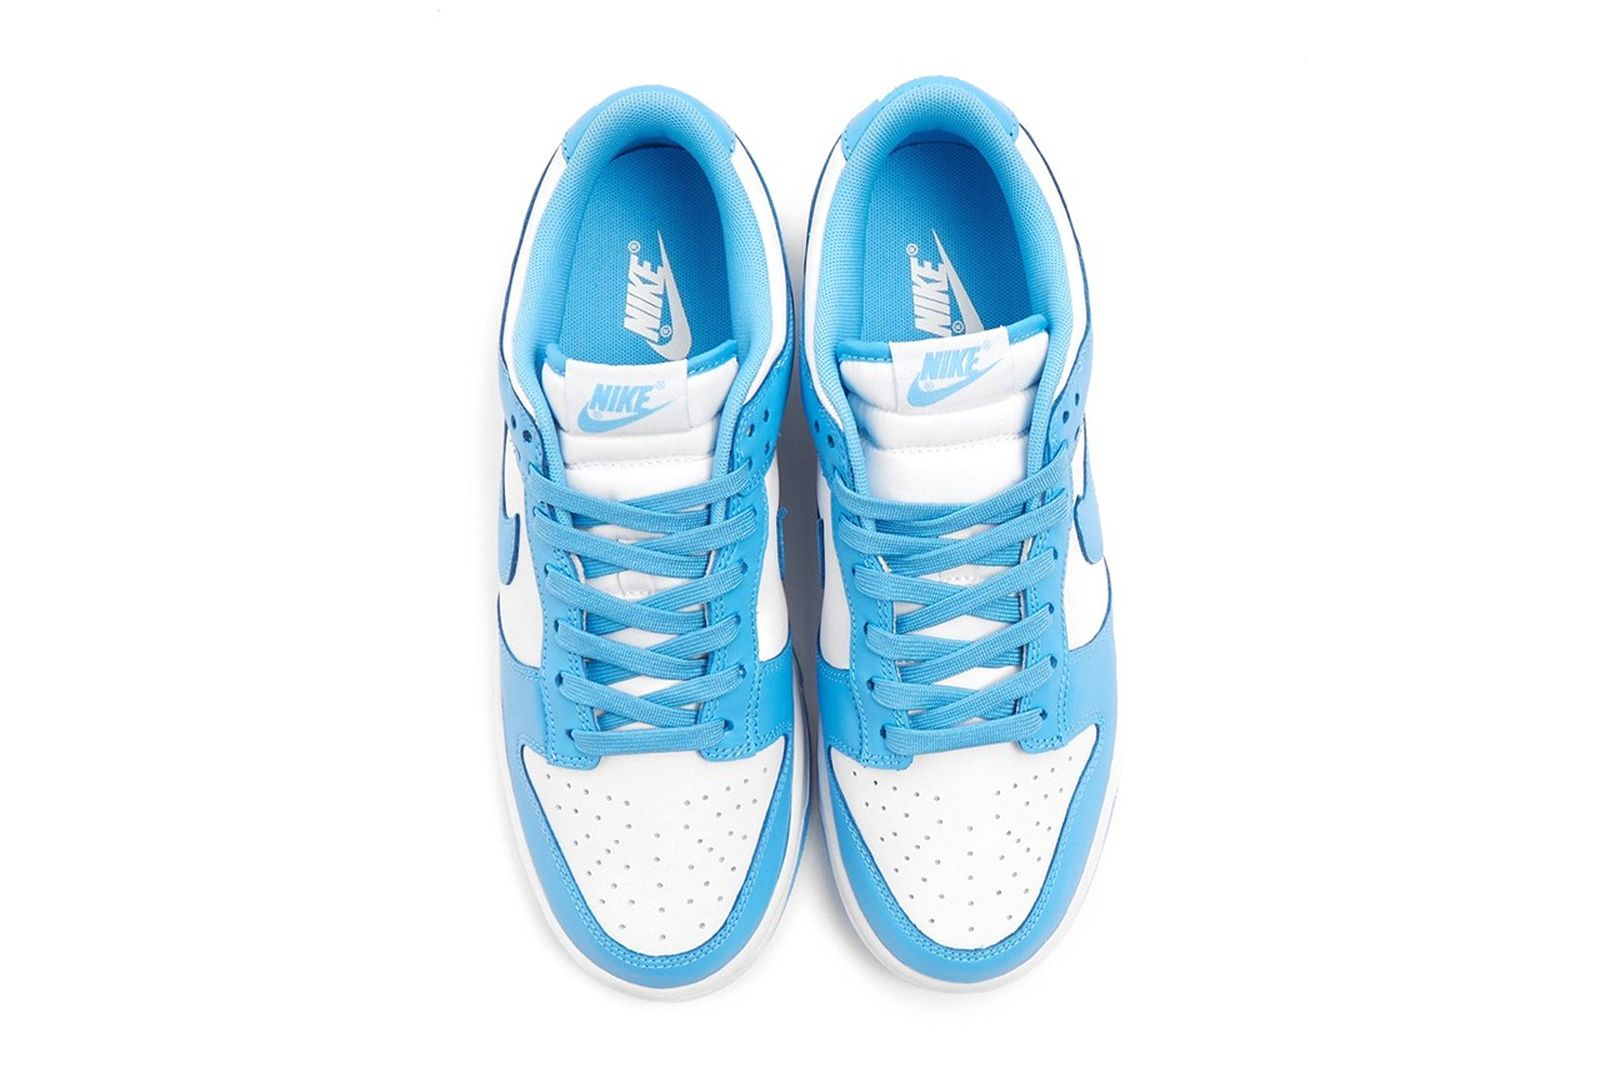 nike-dunk-low-university-blue-release-date-price-2